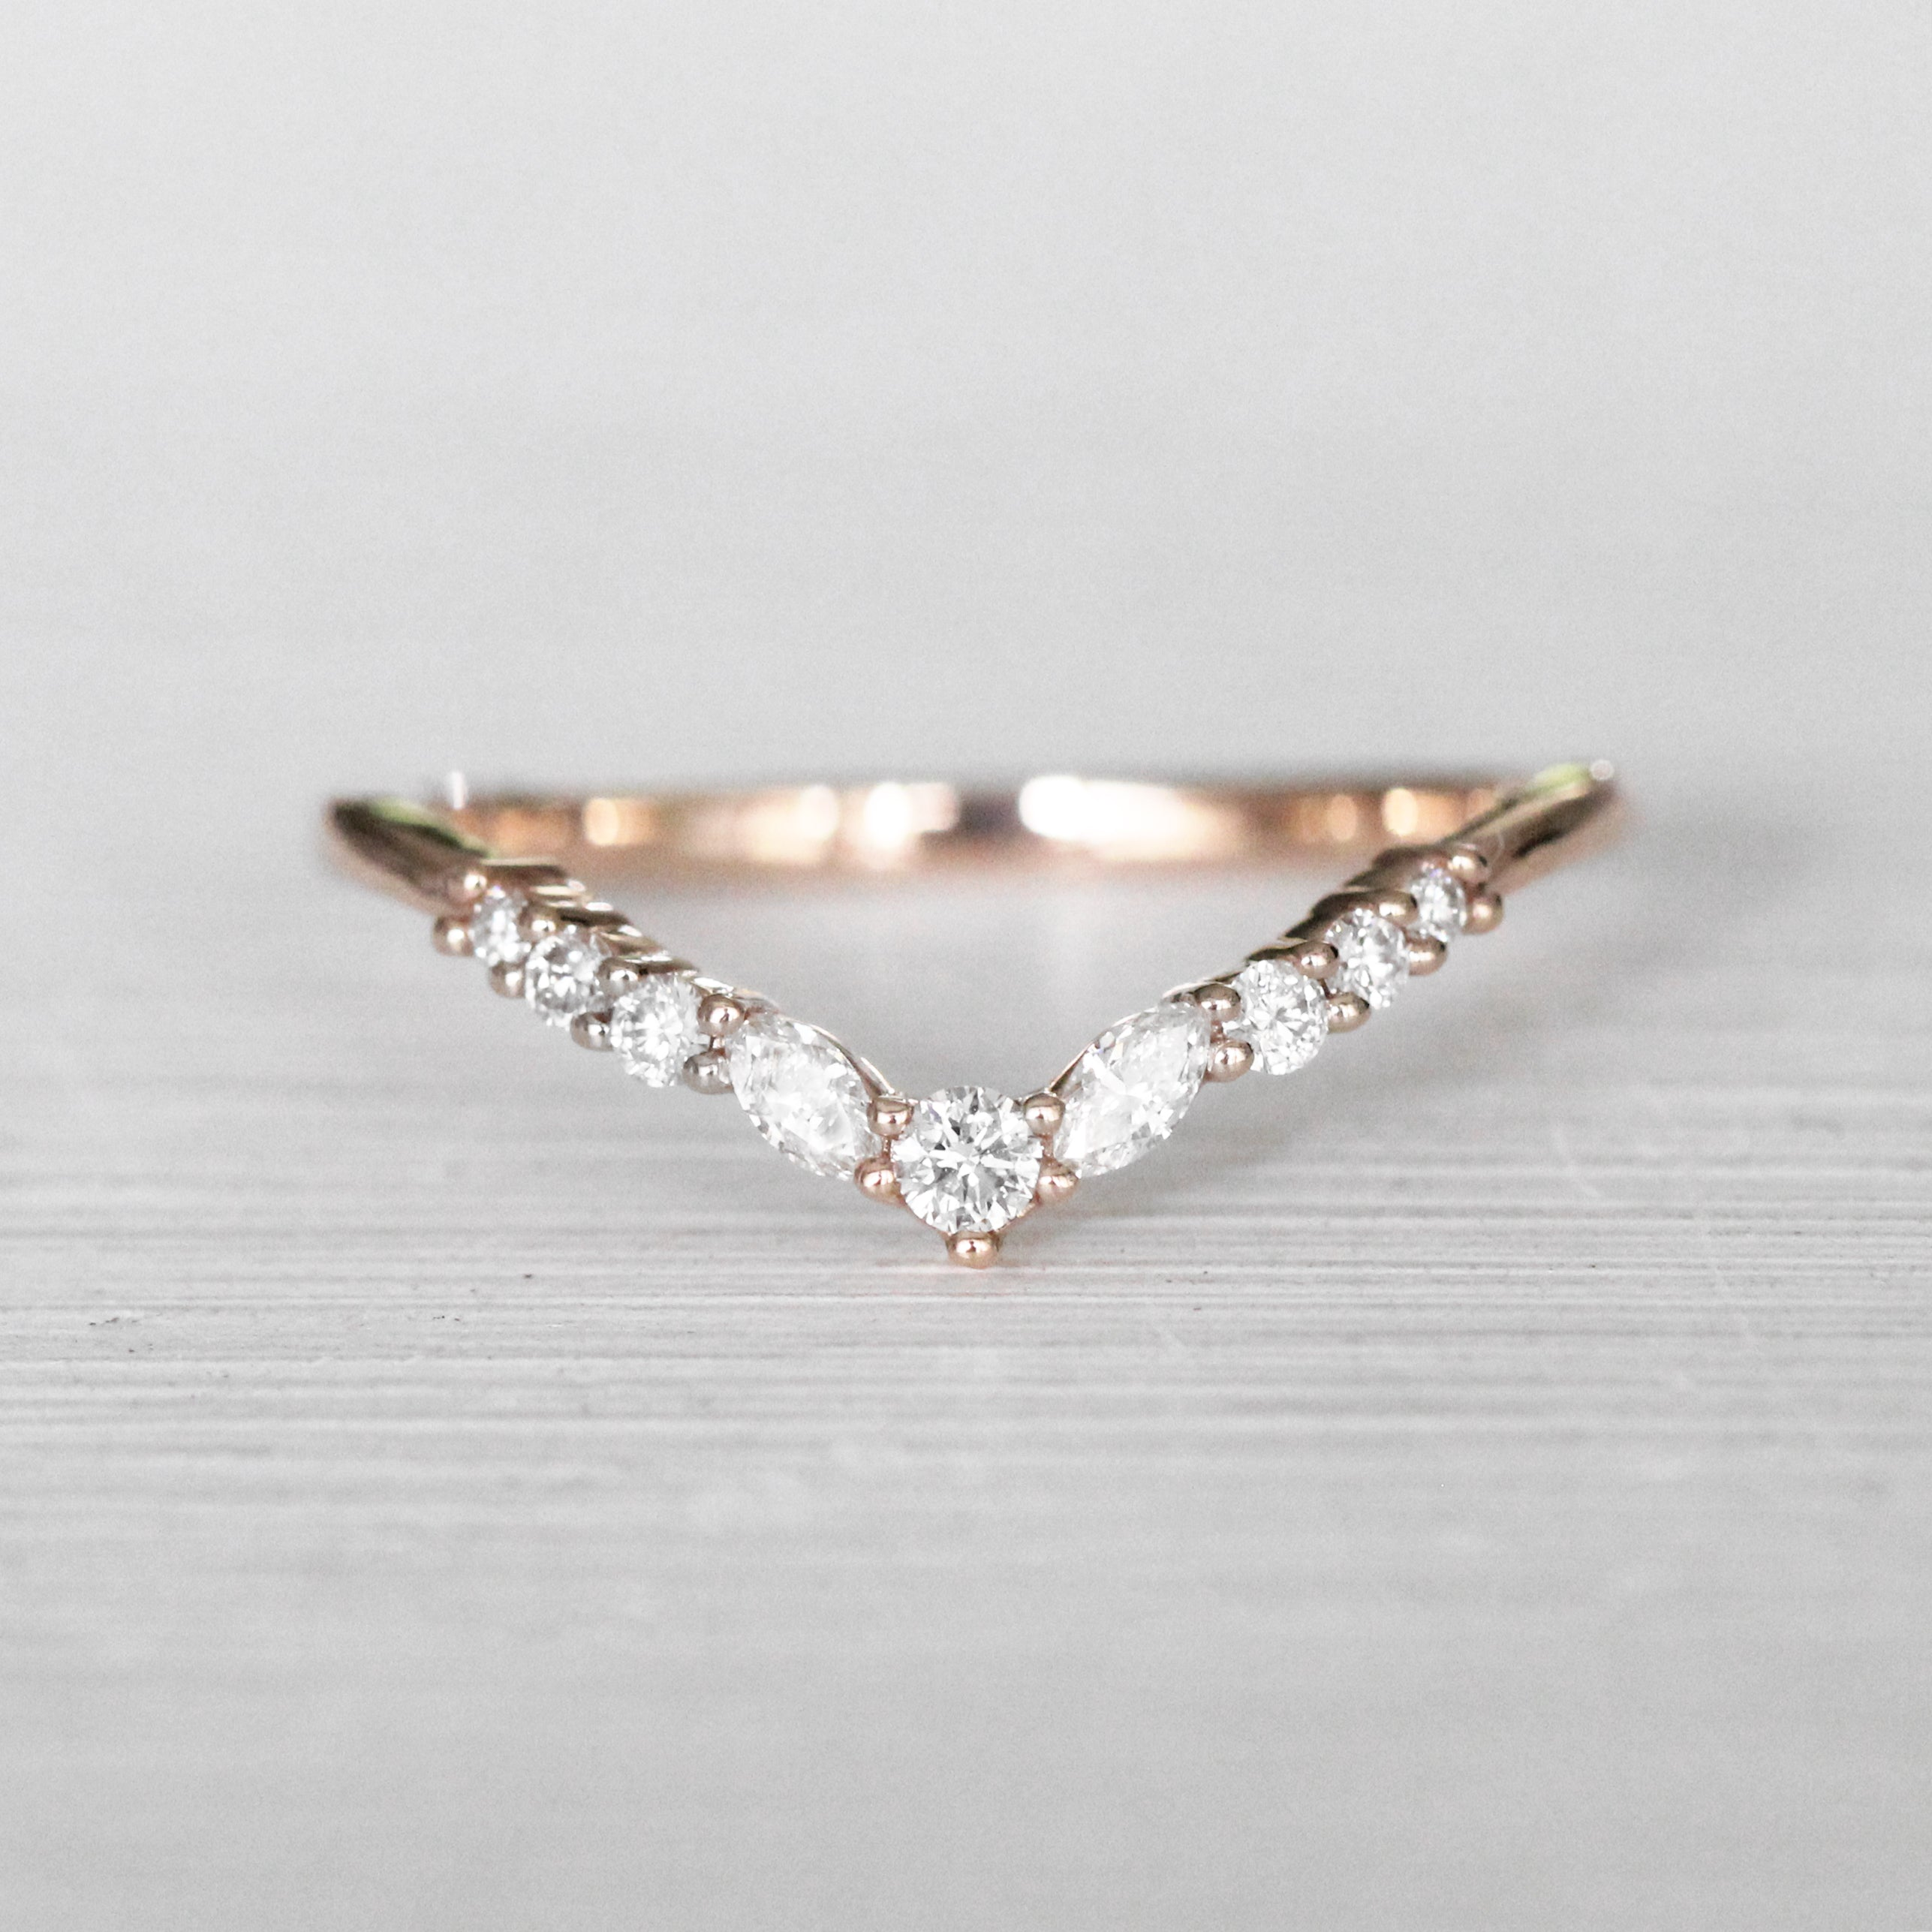 Ainsley V-Contoured Stackable Wedding Band - Made to Order - Salt & Pepper Celestial Diamond Engagement Rings and Wedding Bands  by Midwinter Co.